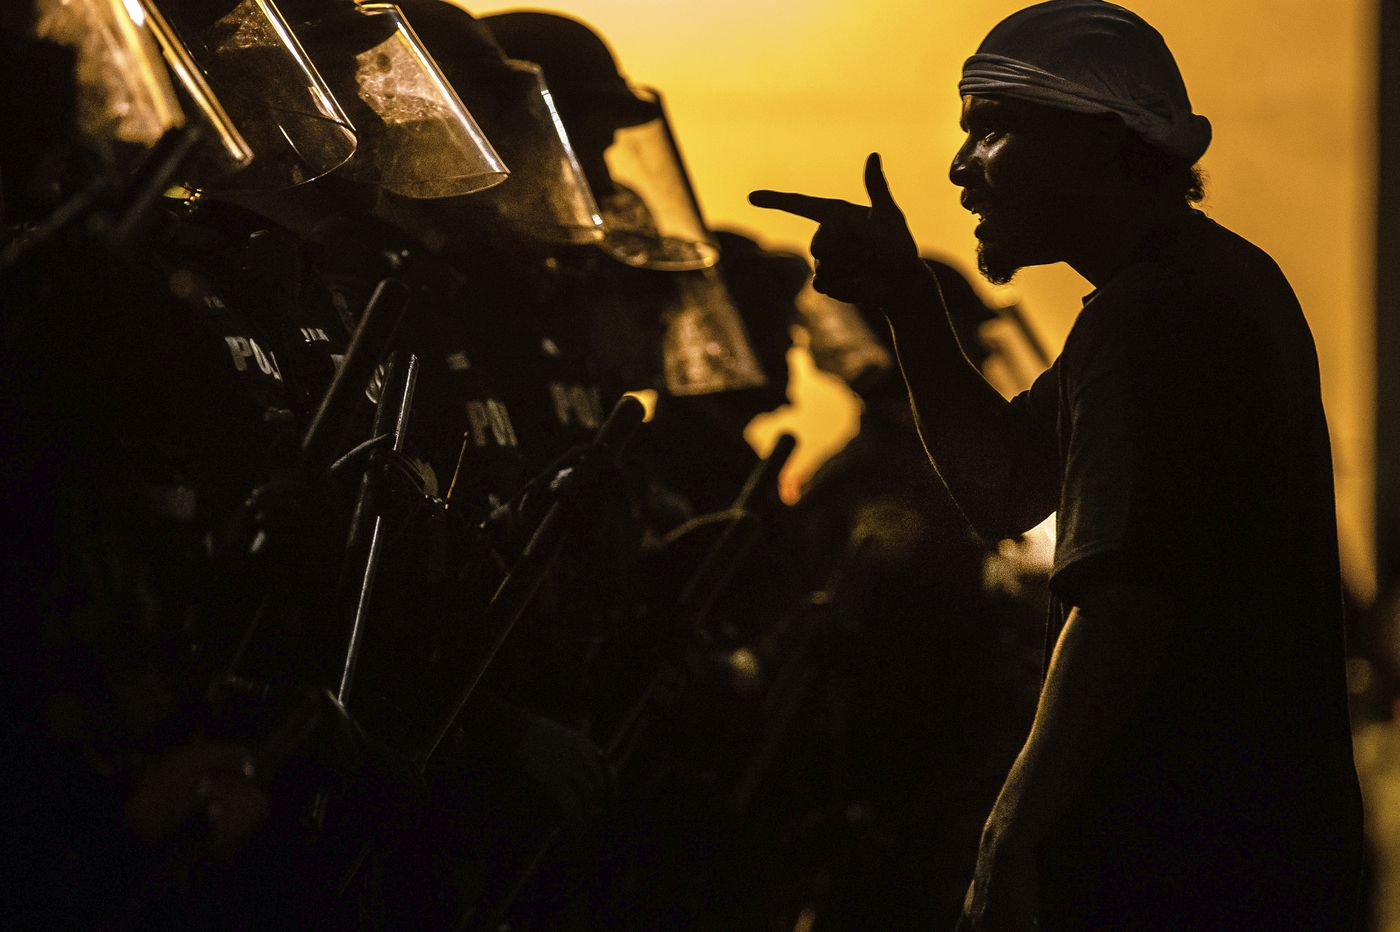 Retreat or deploy? Police try to balance protest response